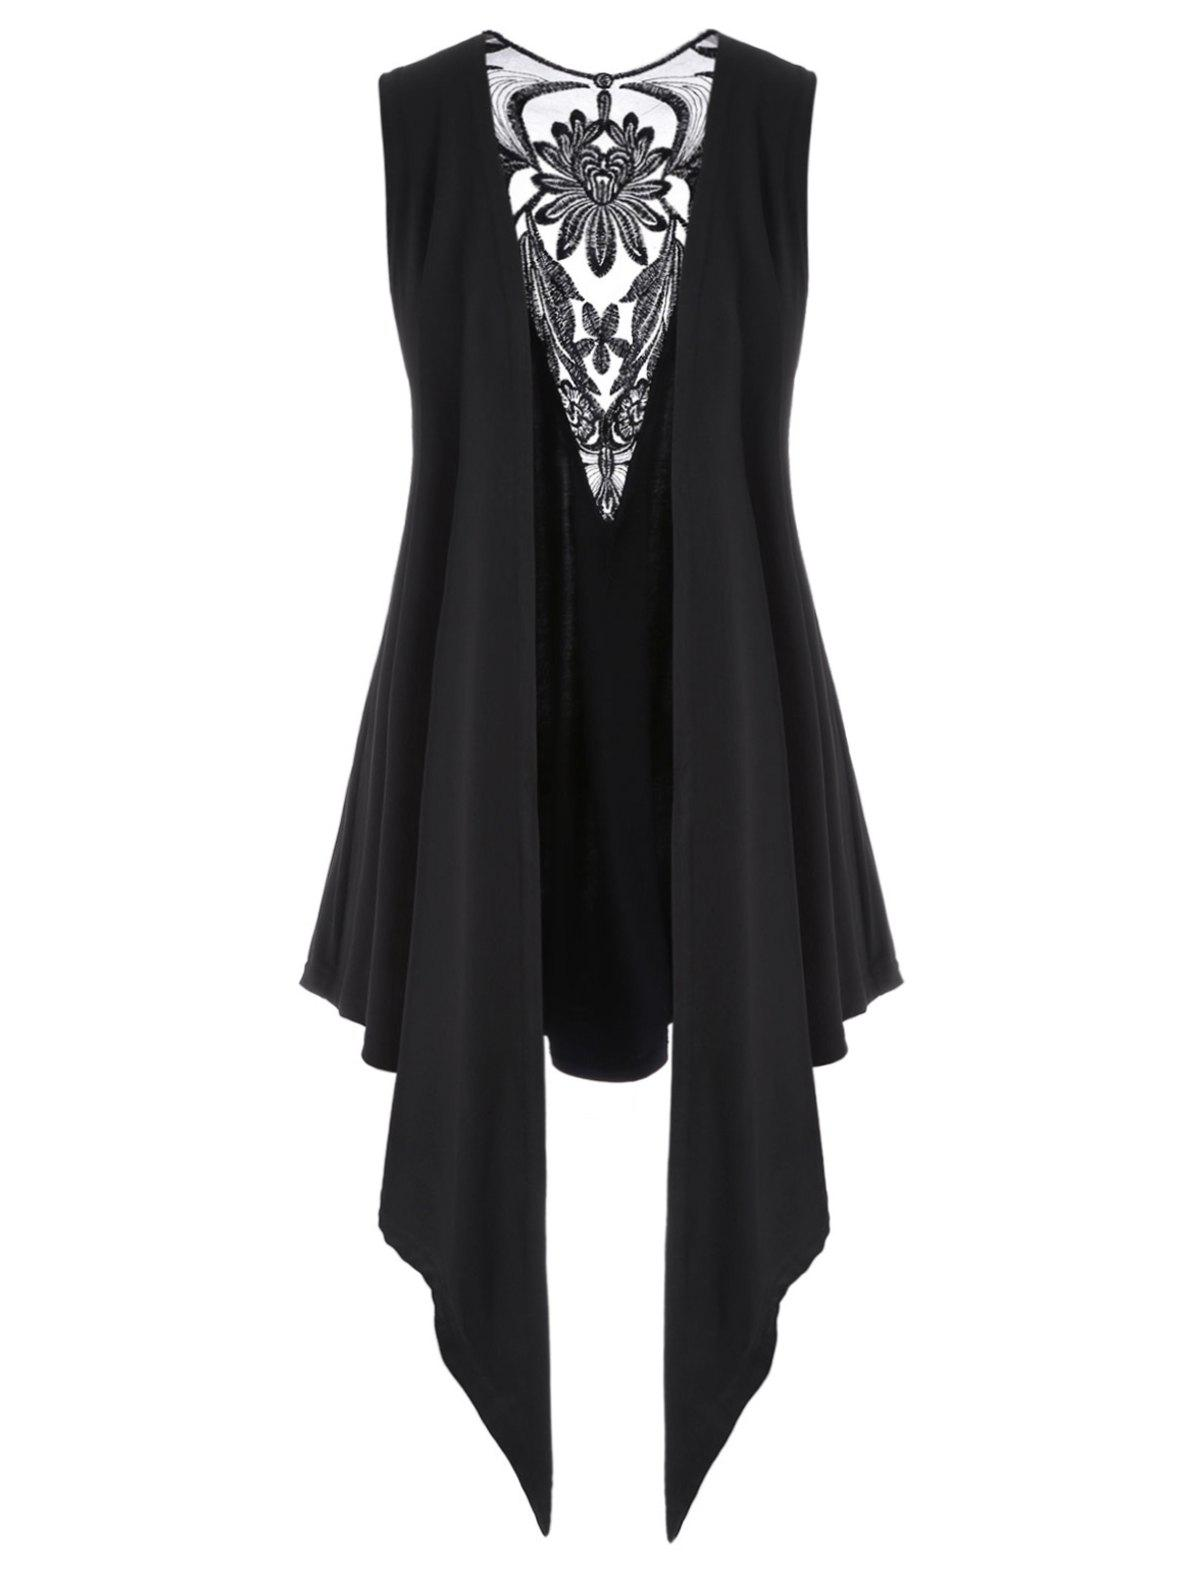 New Mesh Panel Open Front Embroidered Plus Size Top